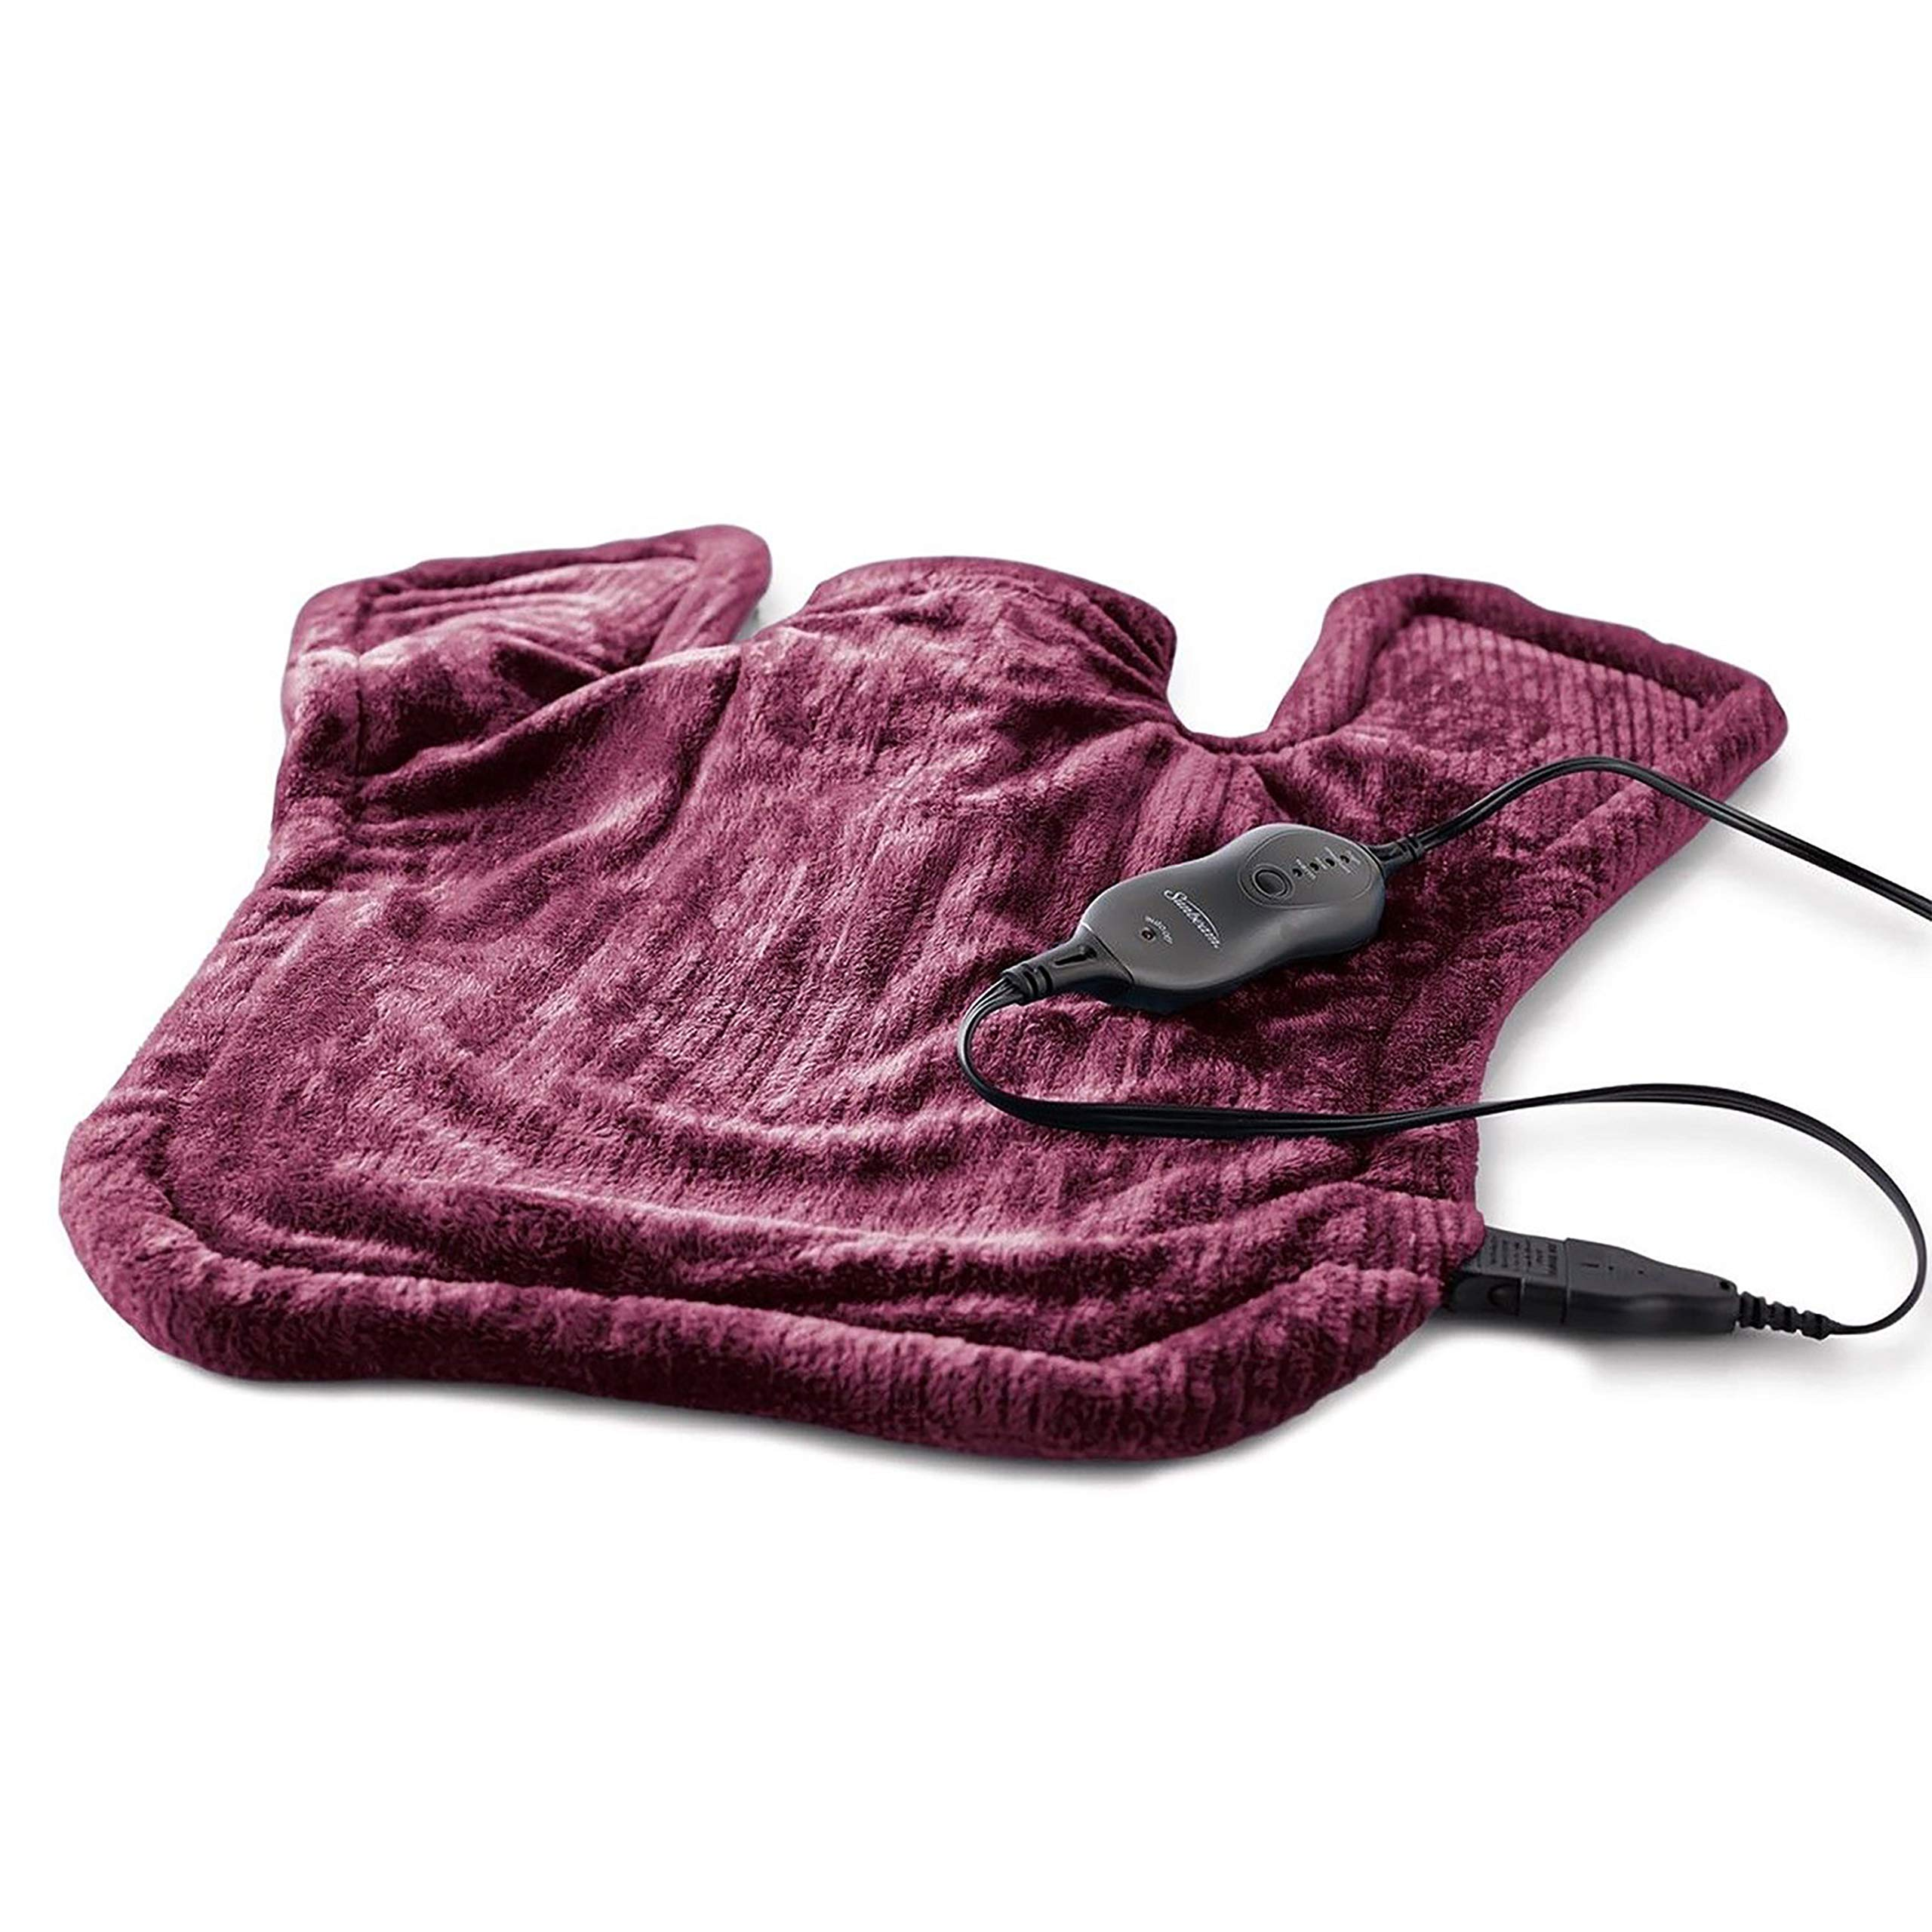 Sunbeam Heating Pad for Neck & Shoulder Pain Relief | XL Renue, 4 Heat Settings with Auto-Shutoff | Burgundy, 25-Inch x 25-Inch by Sunbeam